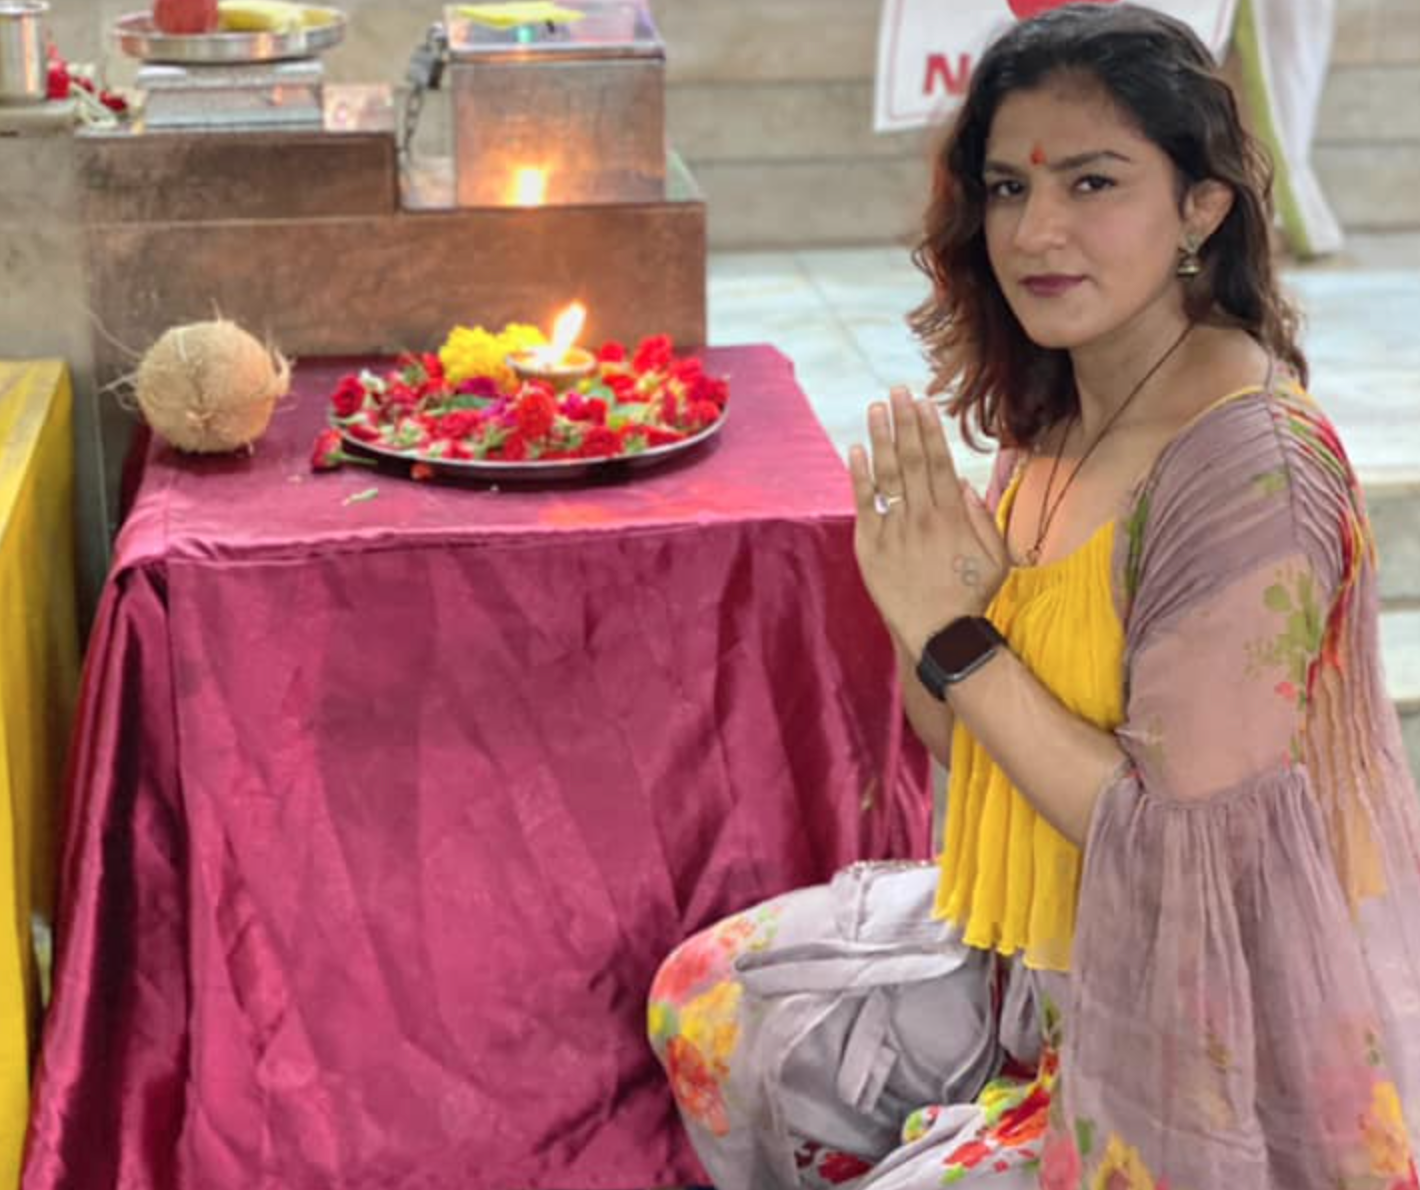 Ritu Phogat praying